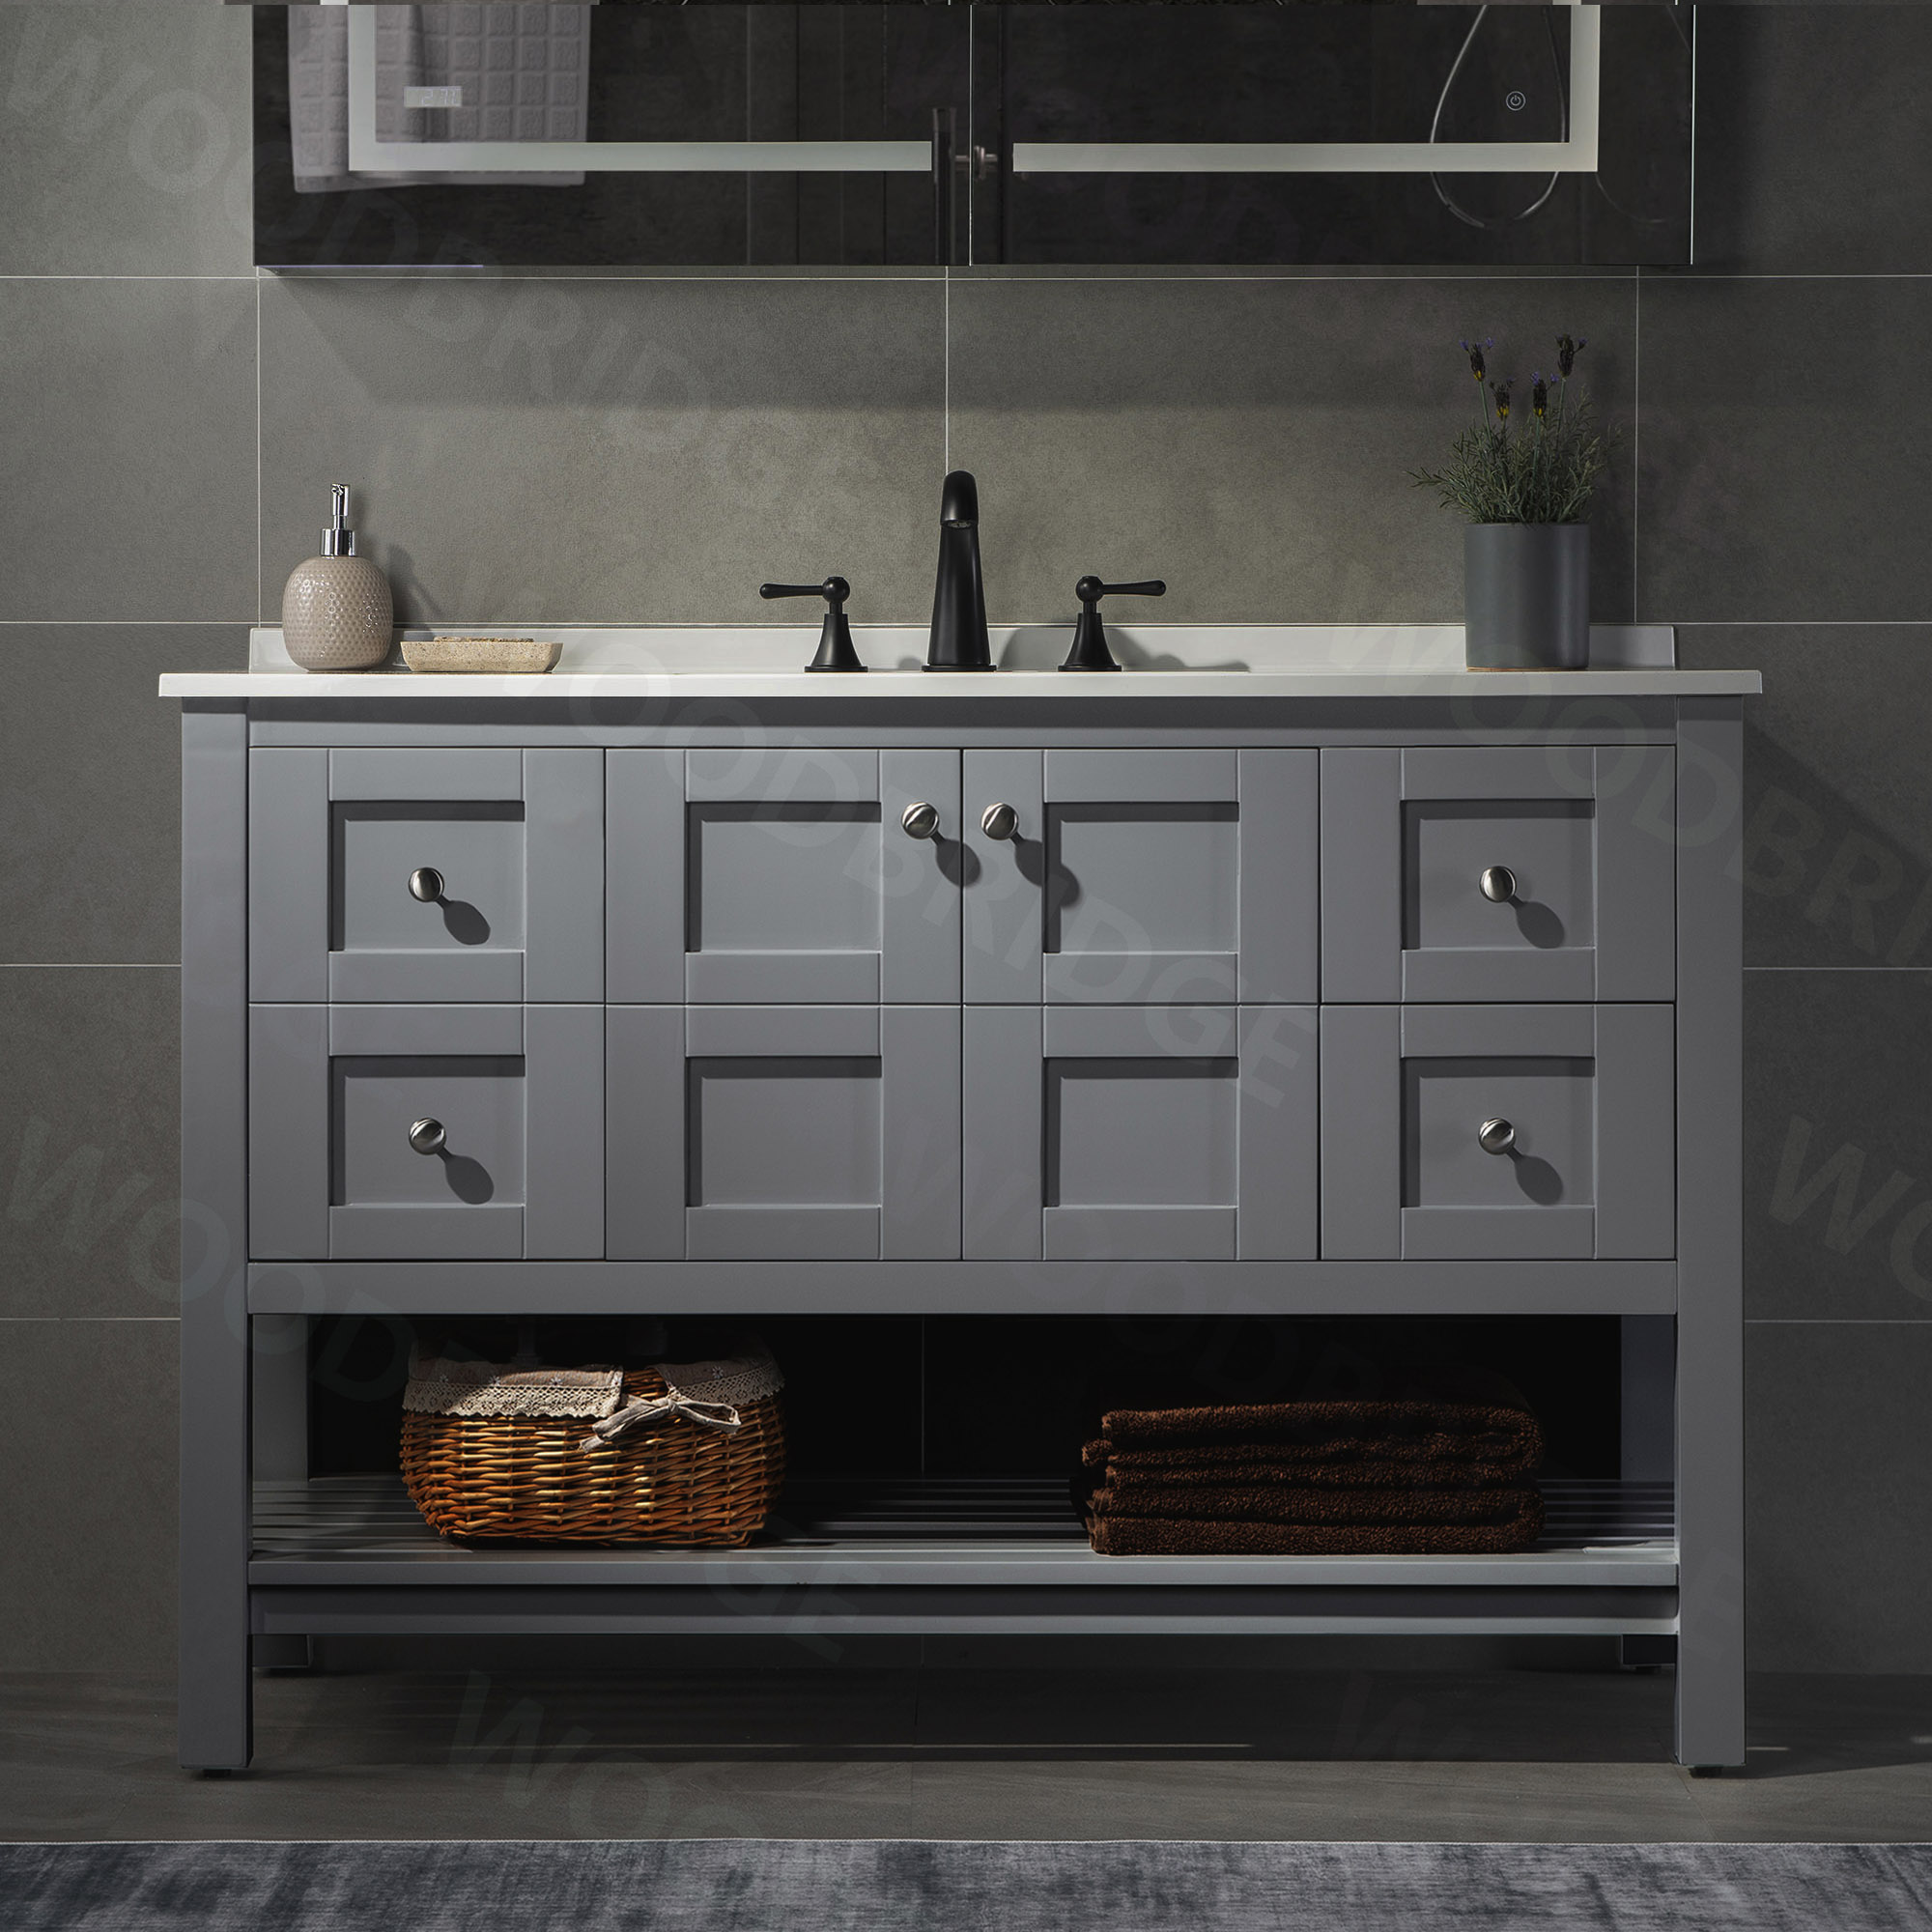 ᐅ Sydney 48 Inch Solid Wood Bathroom Vanity With White Solid Surface Vanity Top 8 Faucet Holes 2 Soft Closing Doors And 4 Full Extension Solid Wood Dovetail Drawers Grey Vanity Color Woodbridge